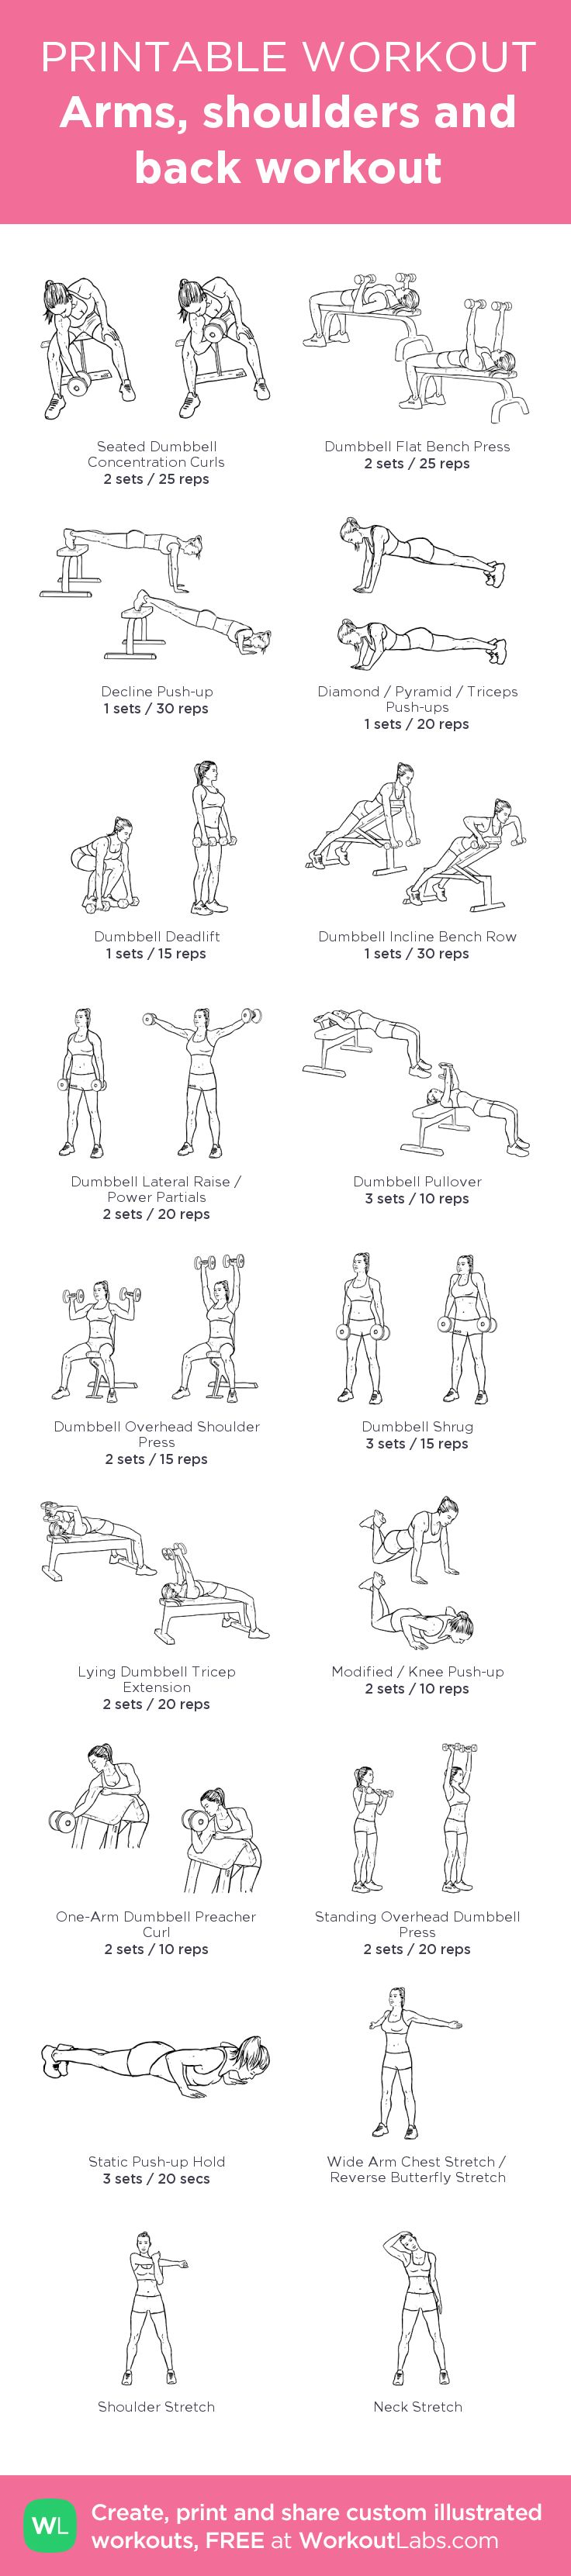 fitness motivation arms shoulders and back workout my visual